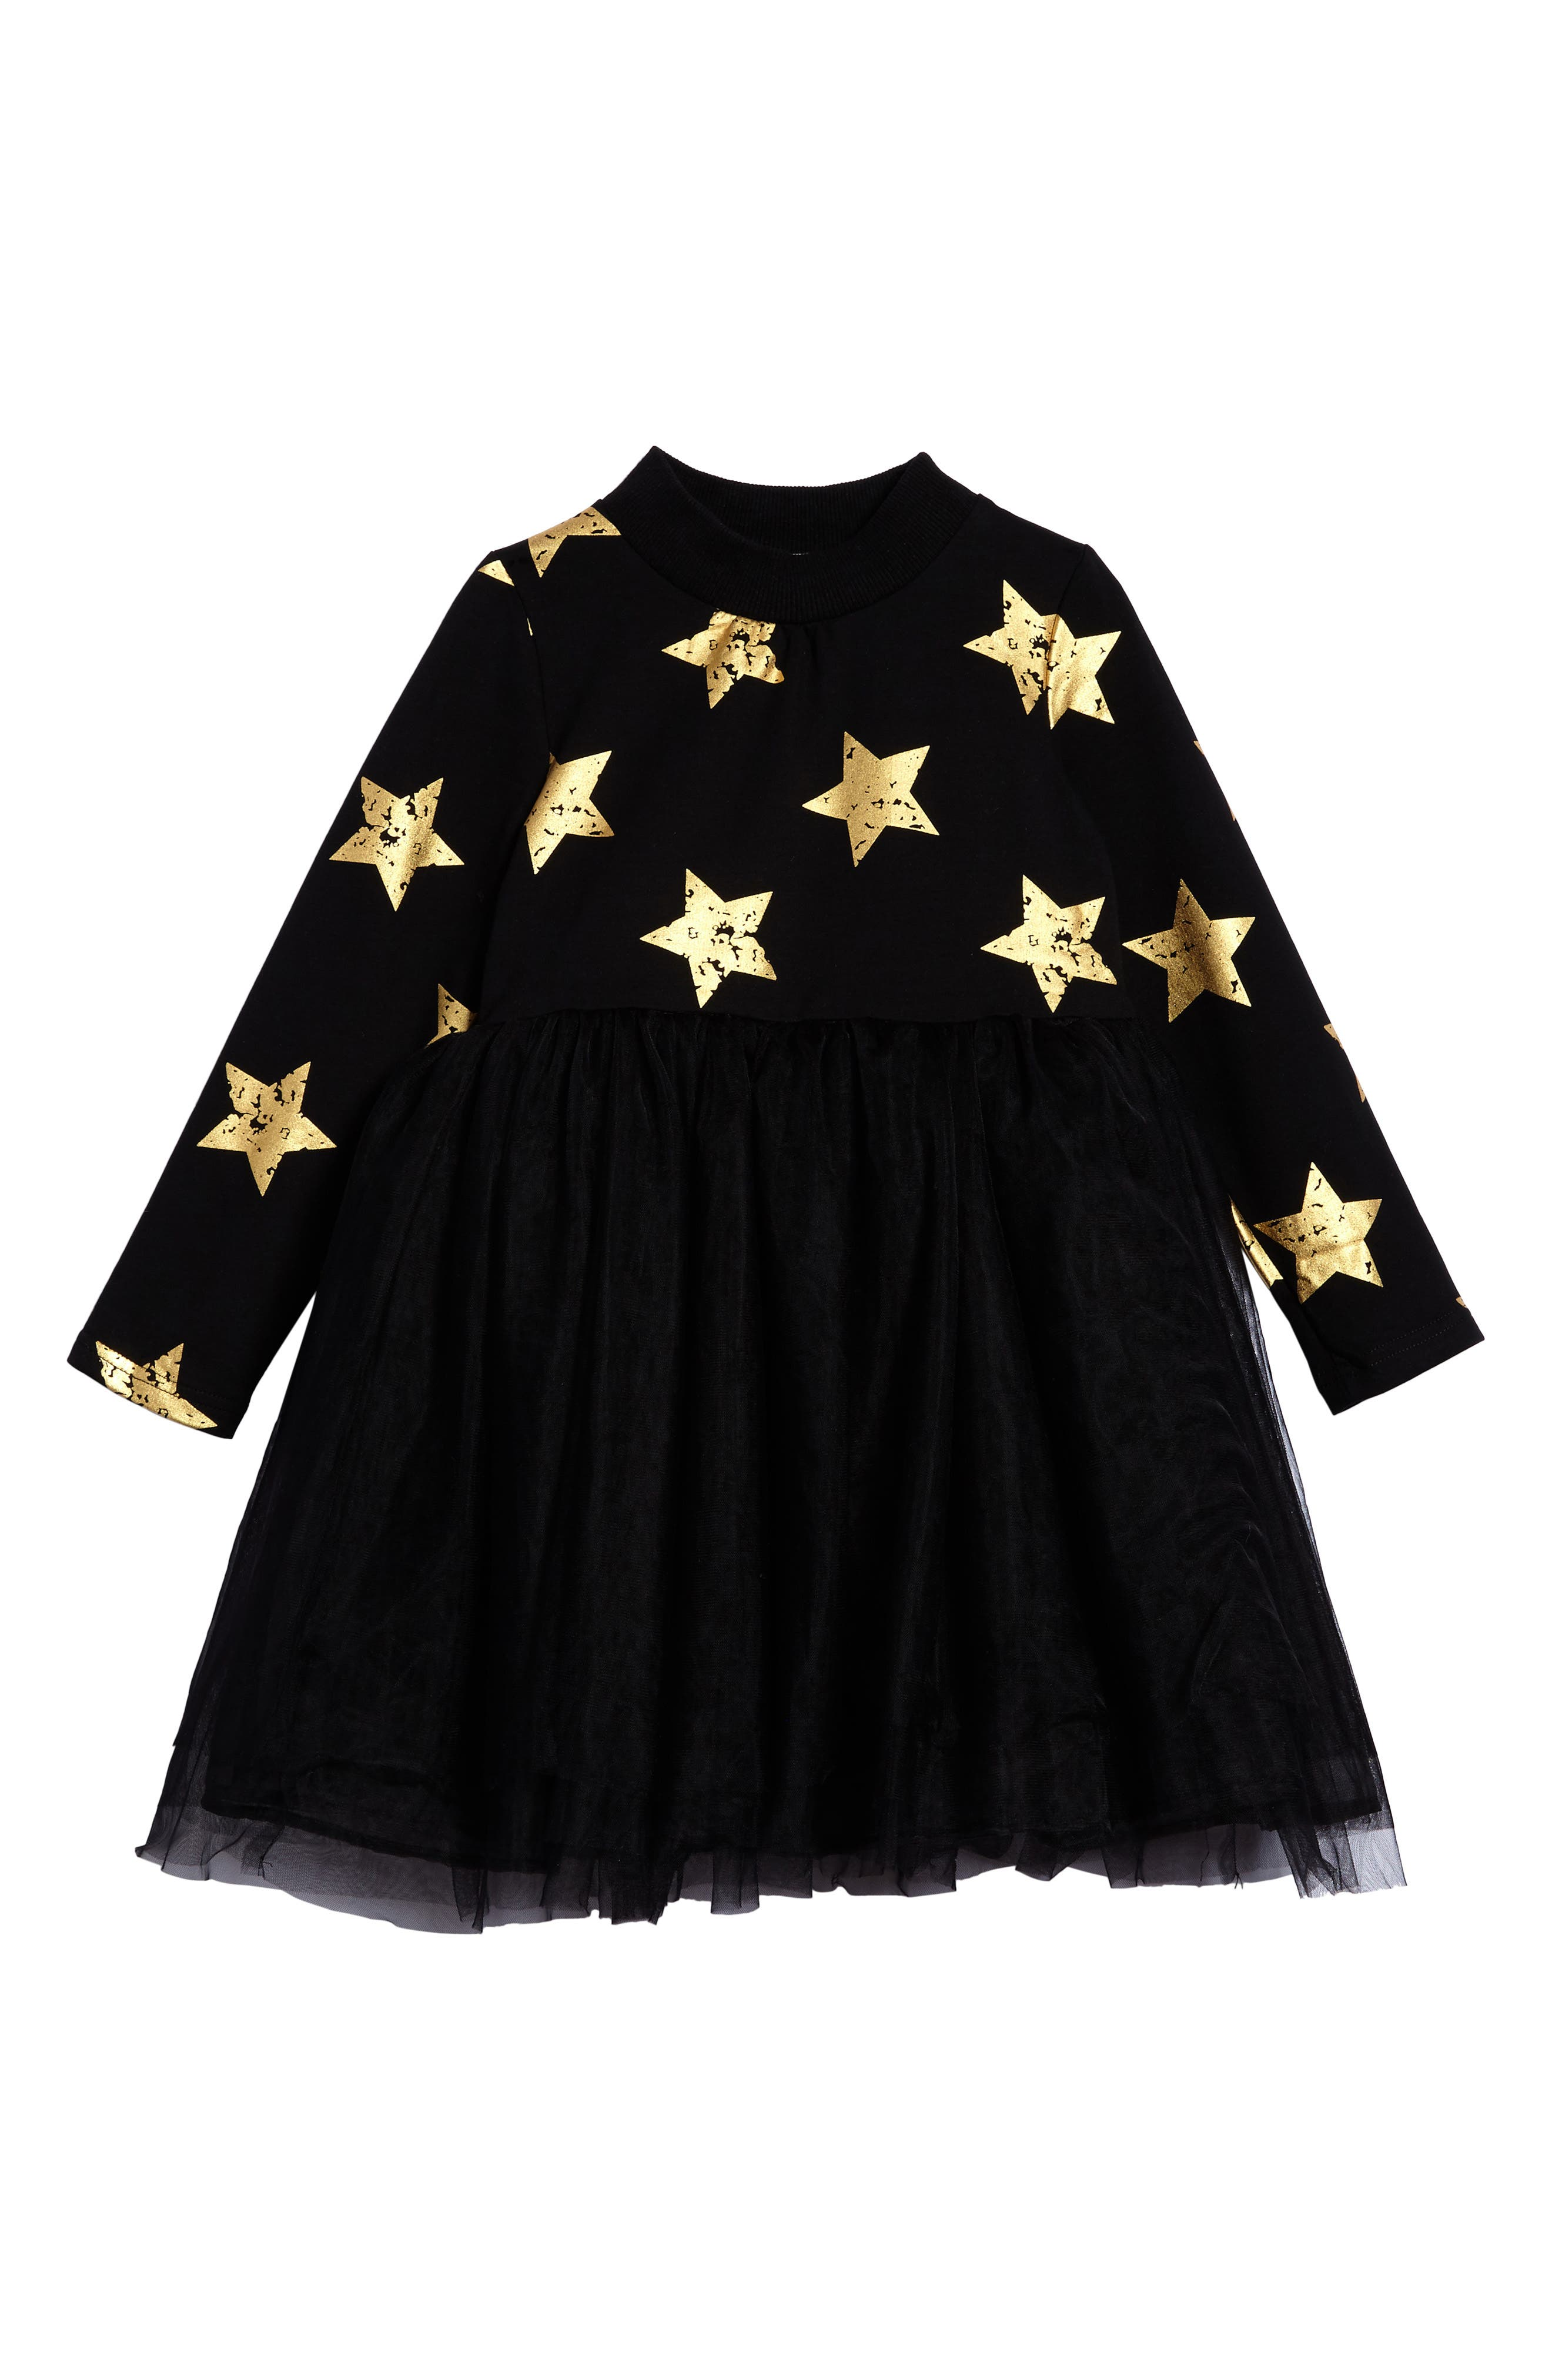 Star Tulle Party Dress,                             Main thumbnail 1, color,                             Black